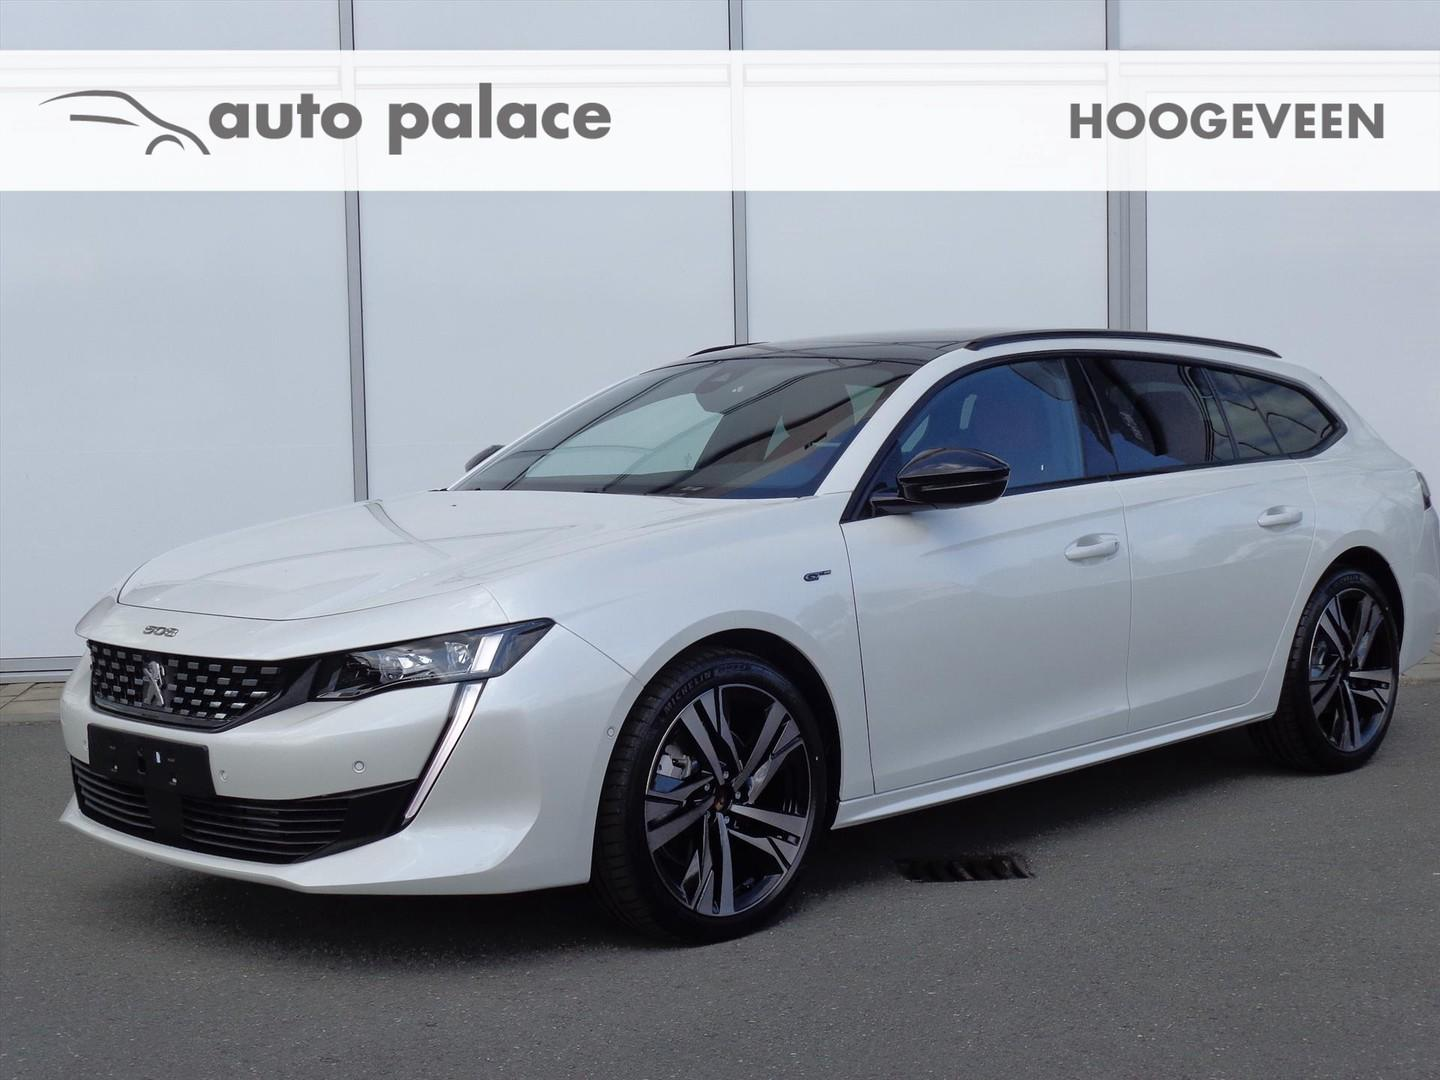 Peugeot 508 First edition 225pk automaat